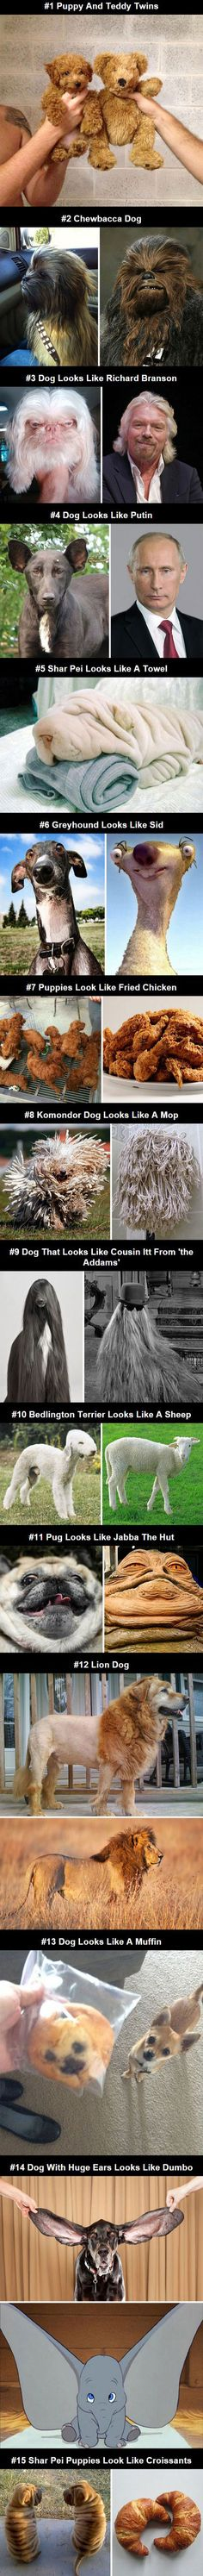 Some Dogs That Look Like Other Things